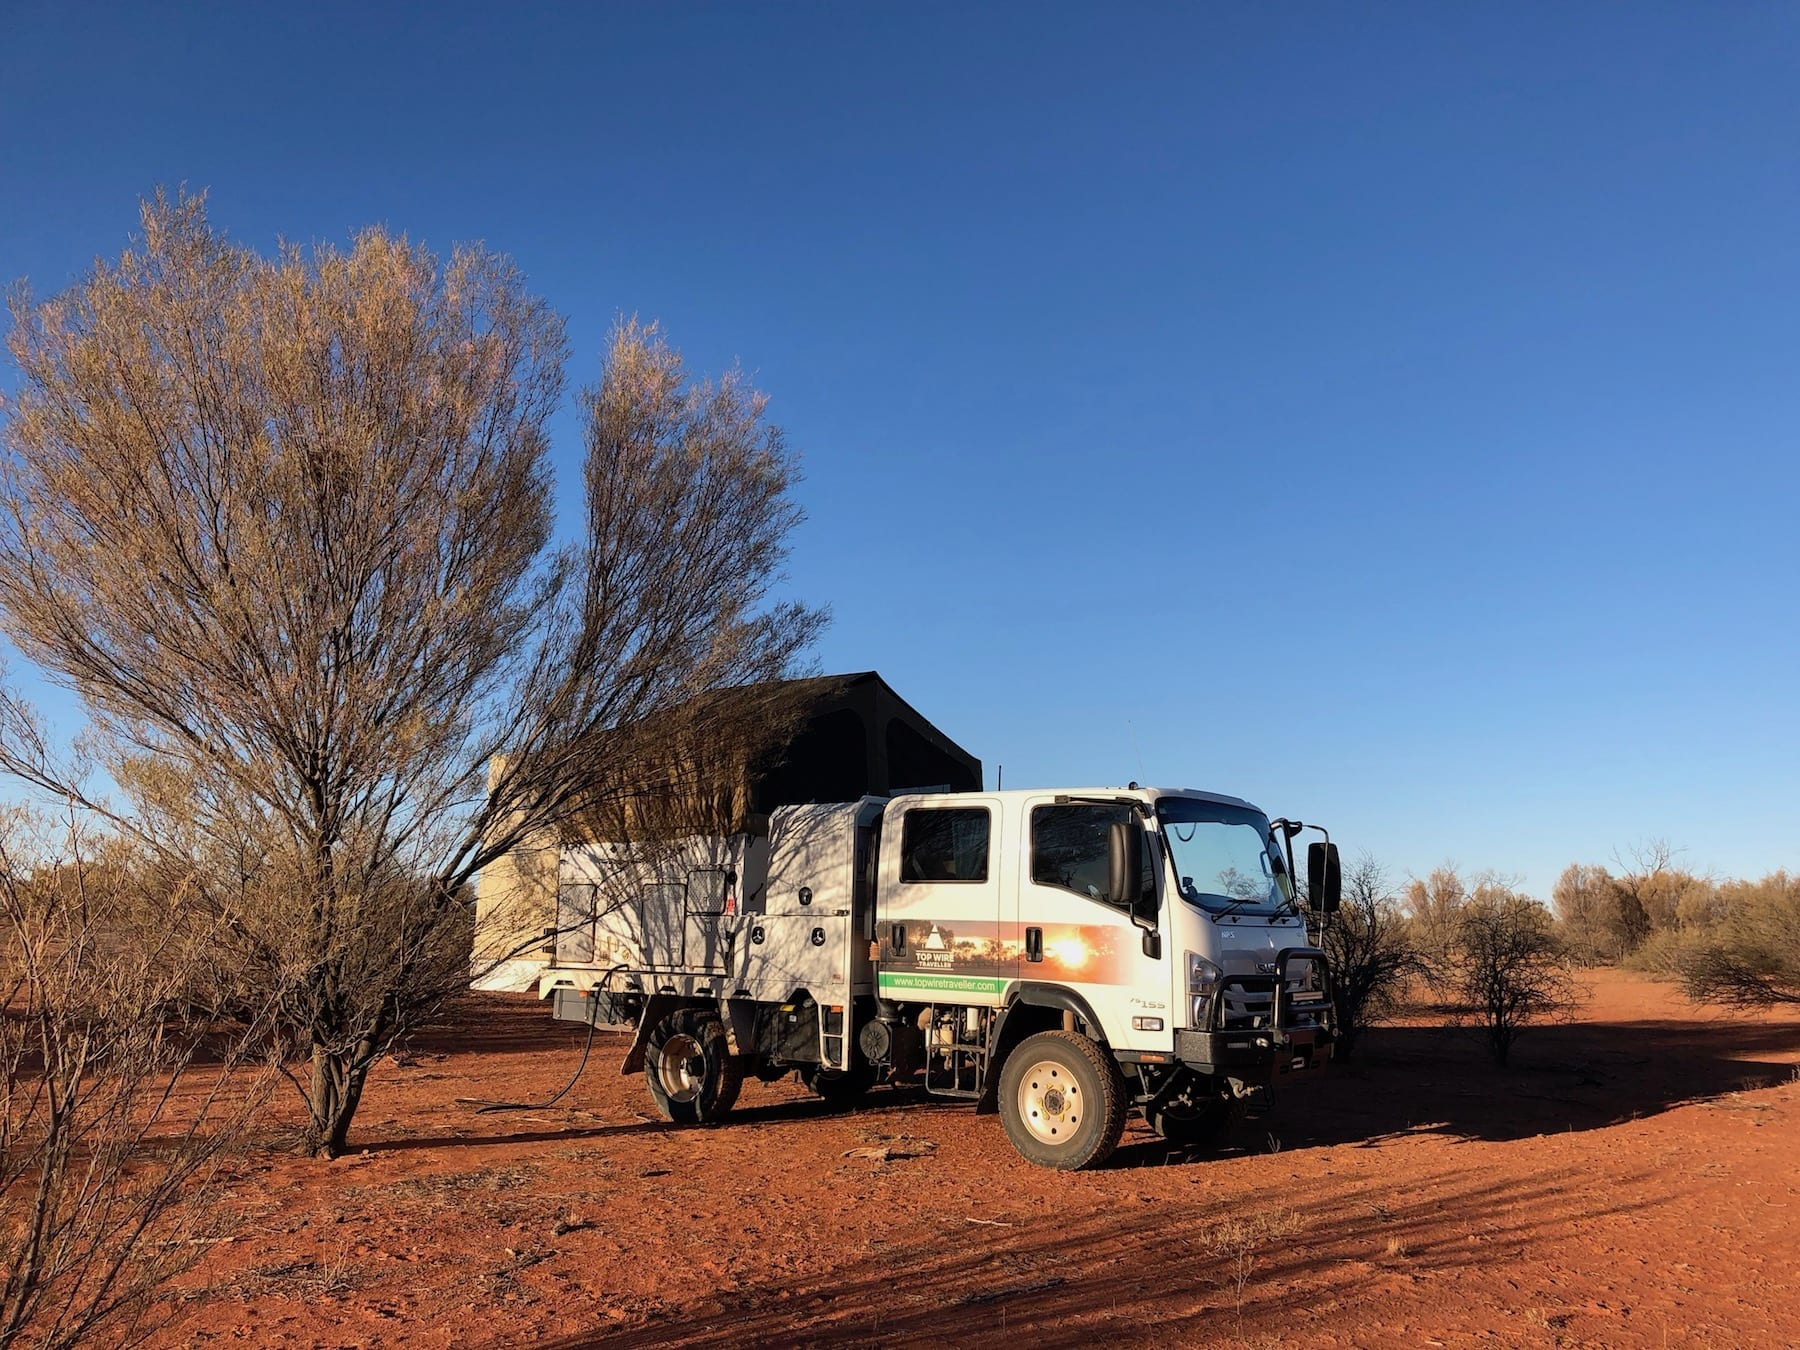 Our 4x4 truck camper, set up on the side of Bulloo Downs Road QLD.